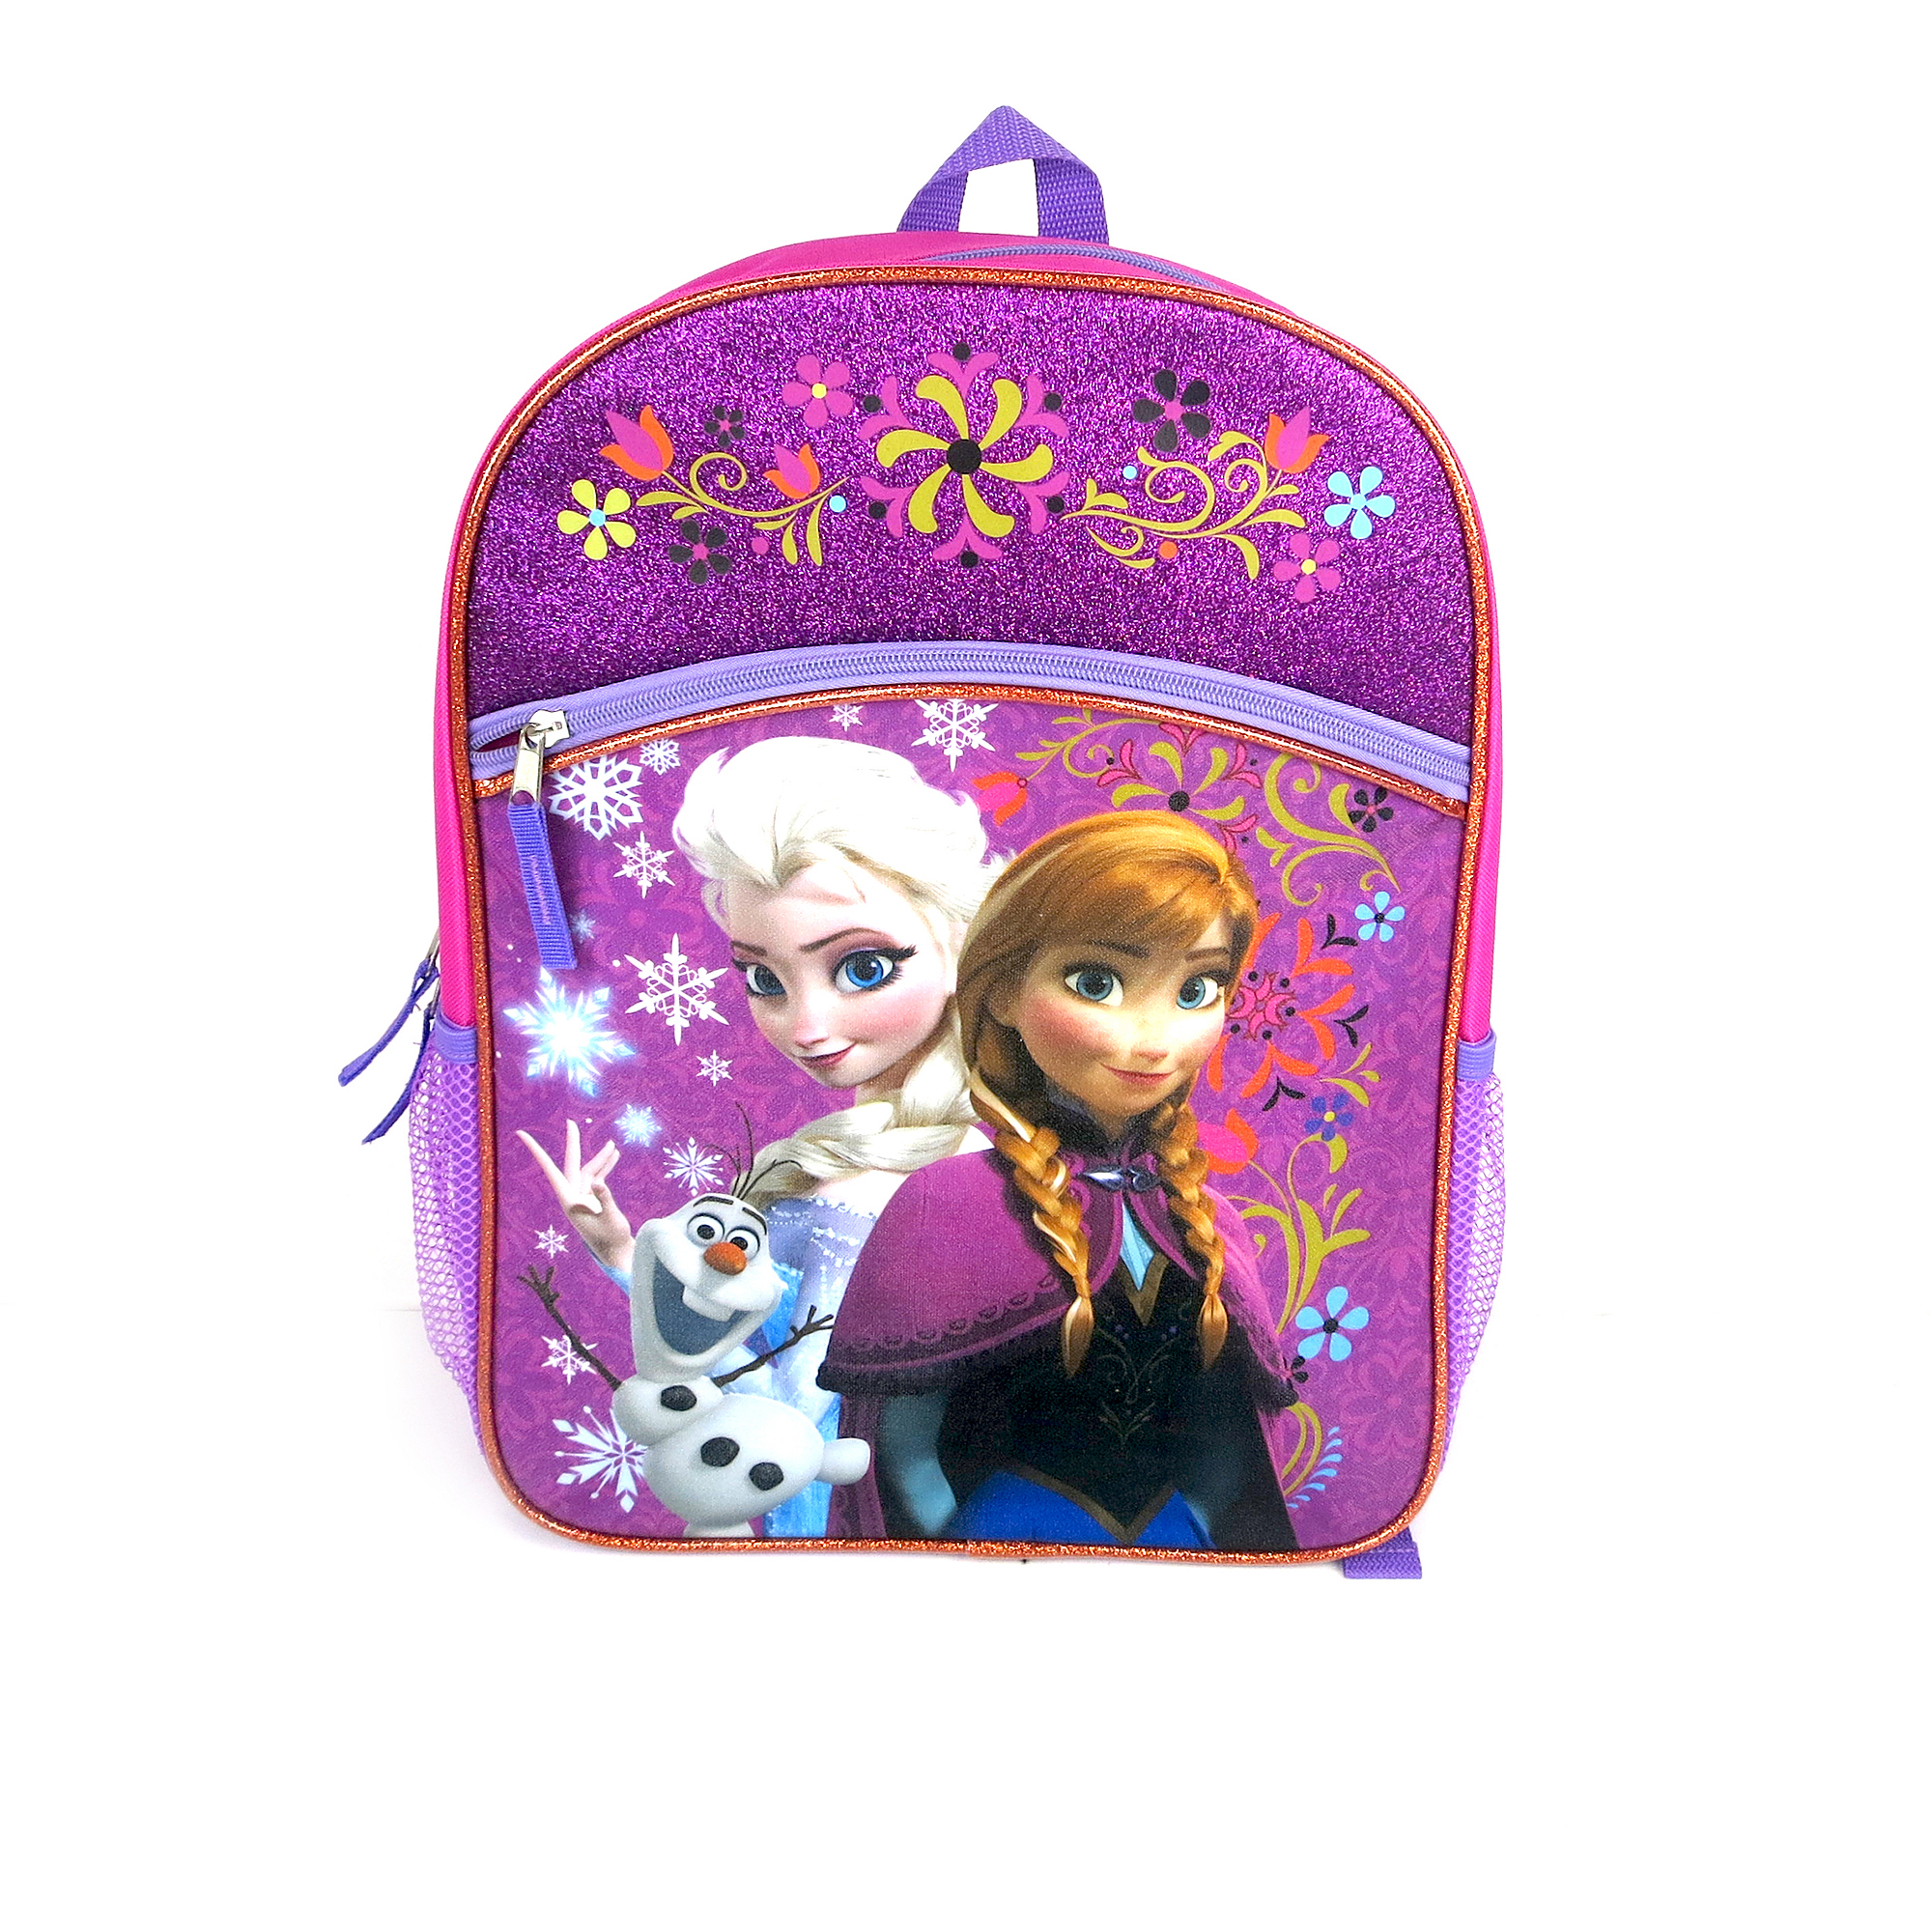 a5ee3c08f4b Disney Frozen 16 Inch Backpack - Walmart.com